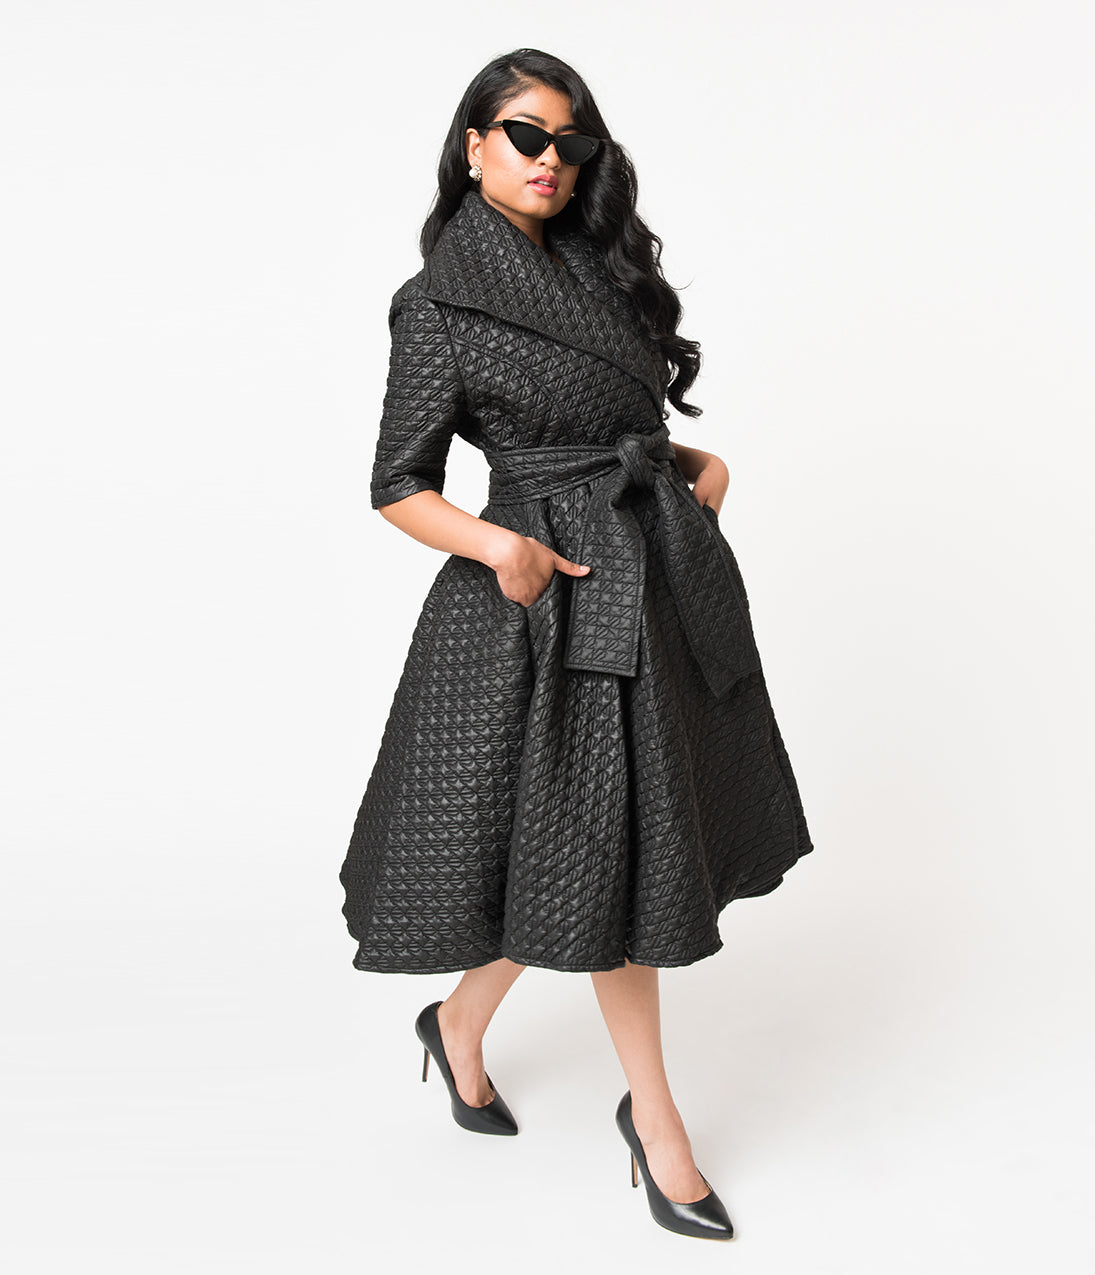 1950s Jackets, Coats, Bolero | Swing, Pin Up, Rockabilly Black Quilted Half Sleeve Wrap Coat $128.00 AT vintagedancer.com